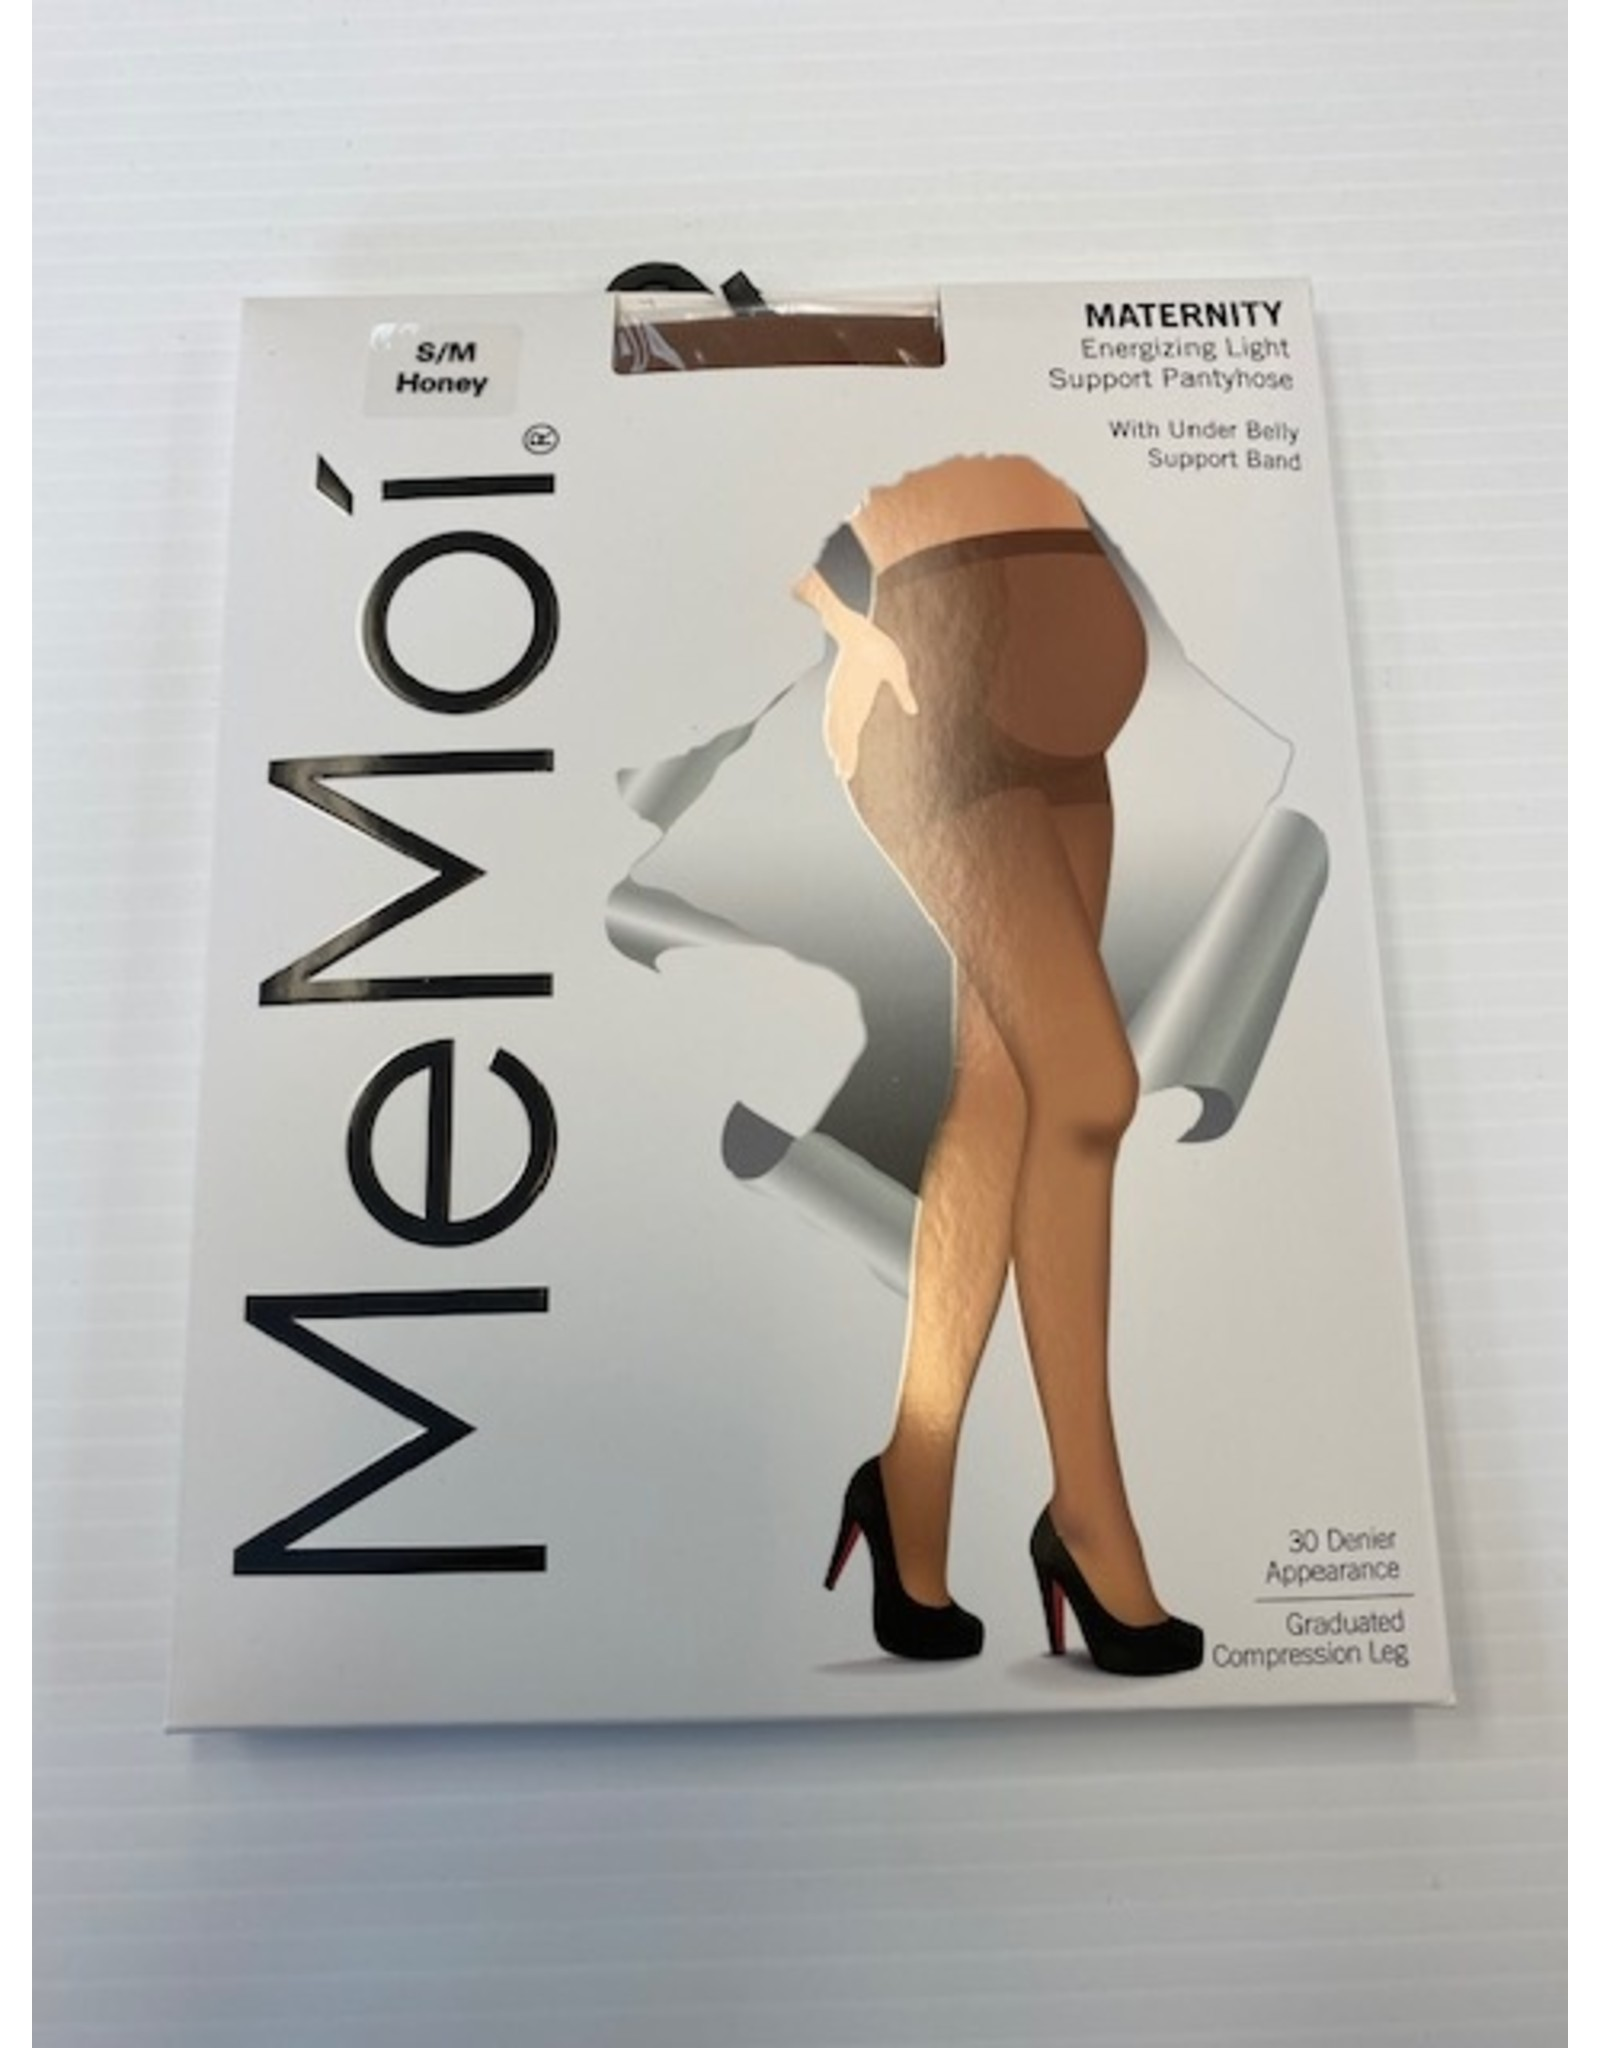 Memoi Memoi Womens Maternity Energizing Light Support Pantyhose with Under Belly Support Band 30 Denier MA-403